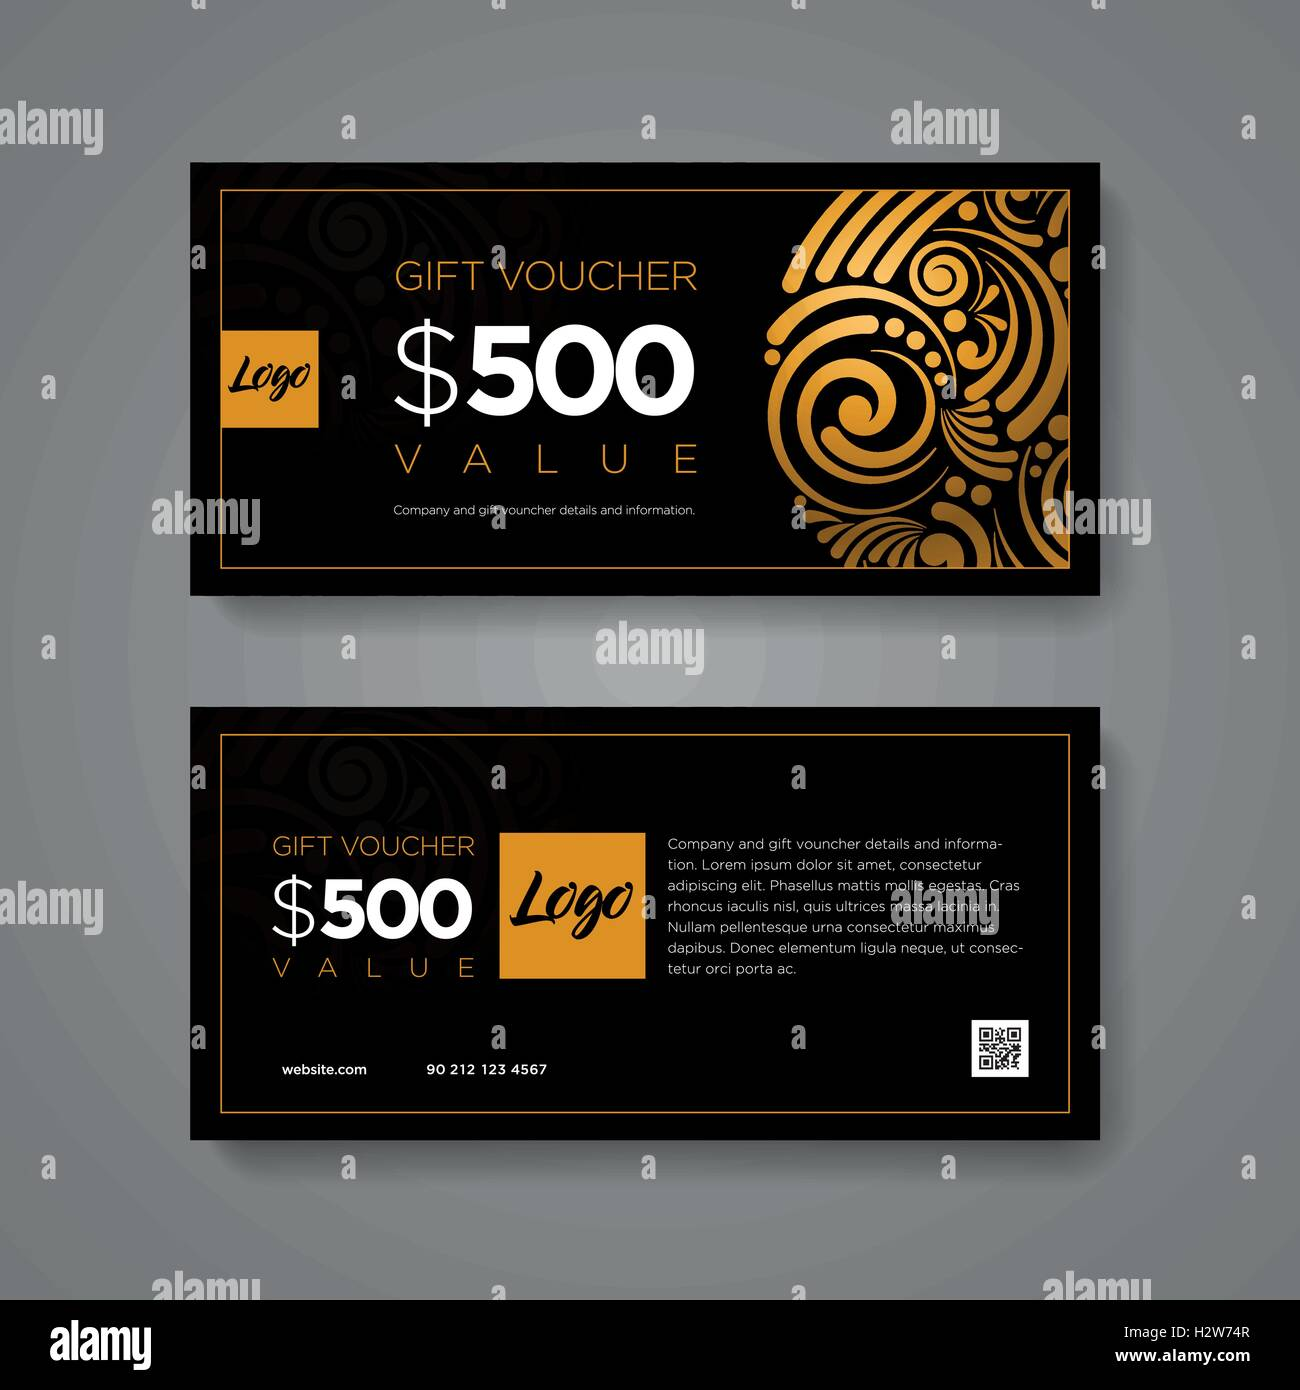 gift voucher design template luxury gold and black scroll pattern